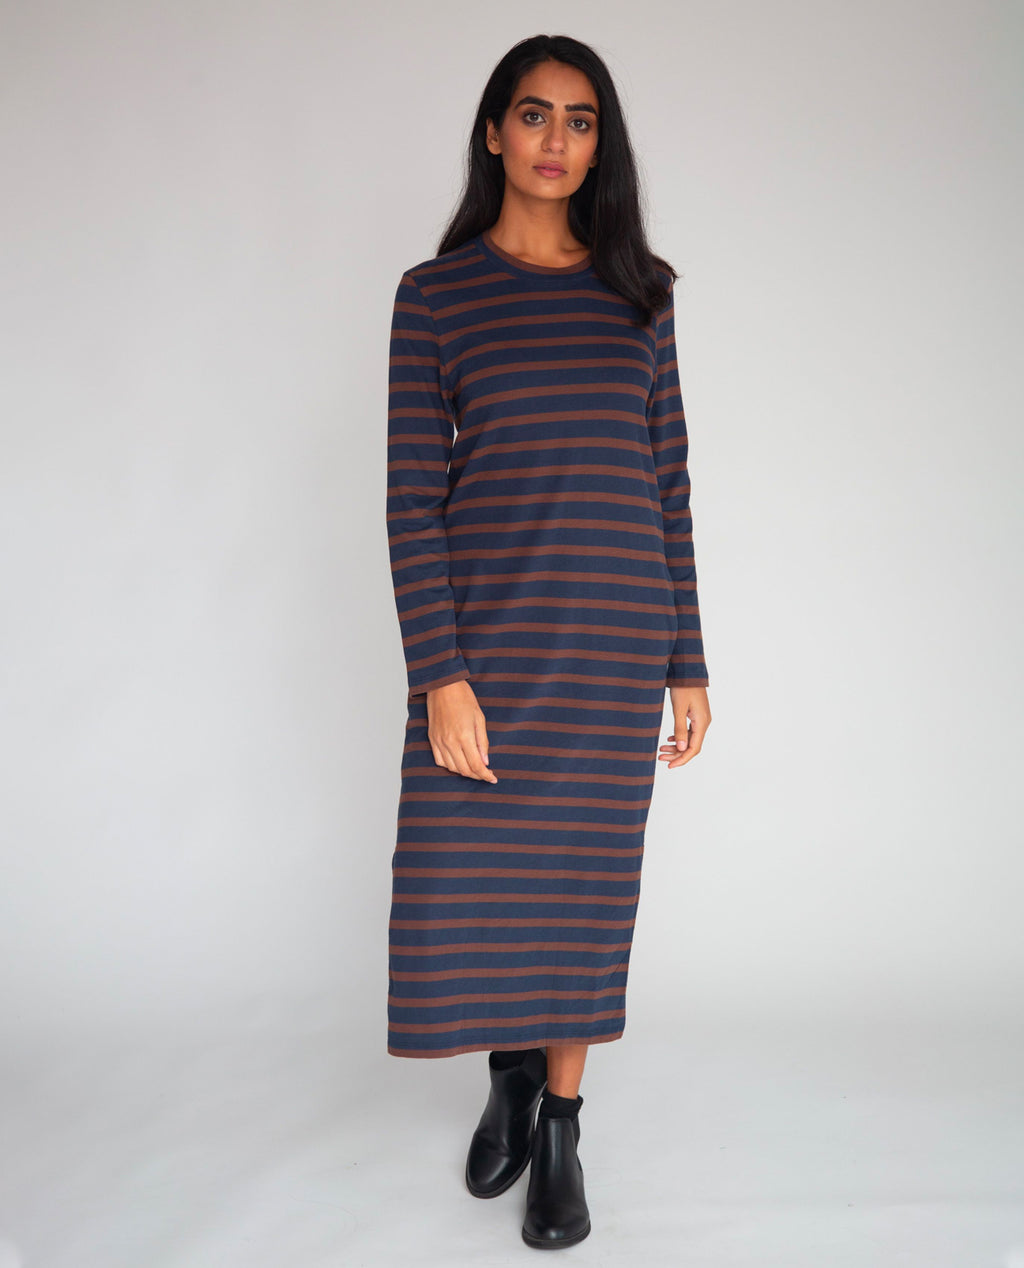 Raina-Sue Organic Cotton Dress In Navy & Chocolate